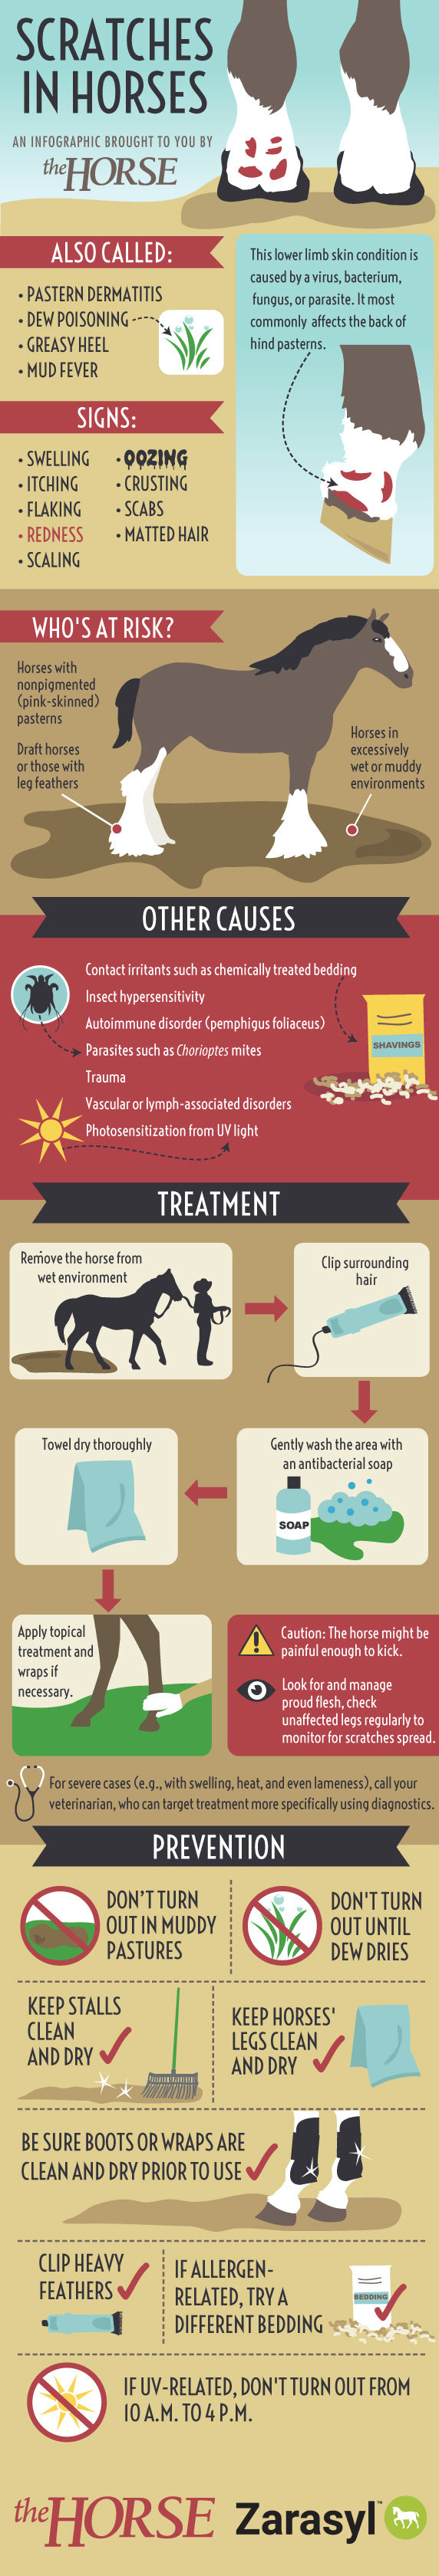 Scratches in horses inforgraphics